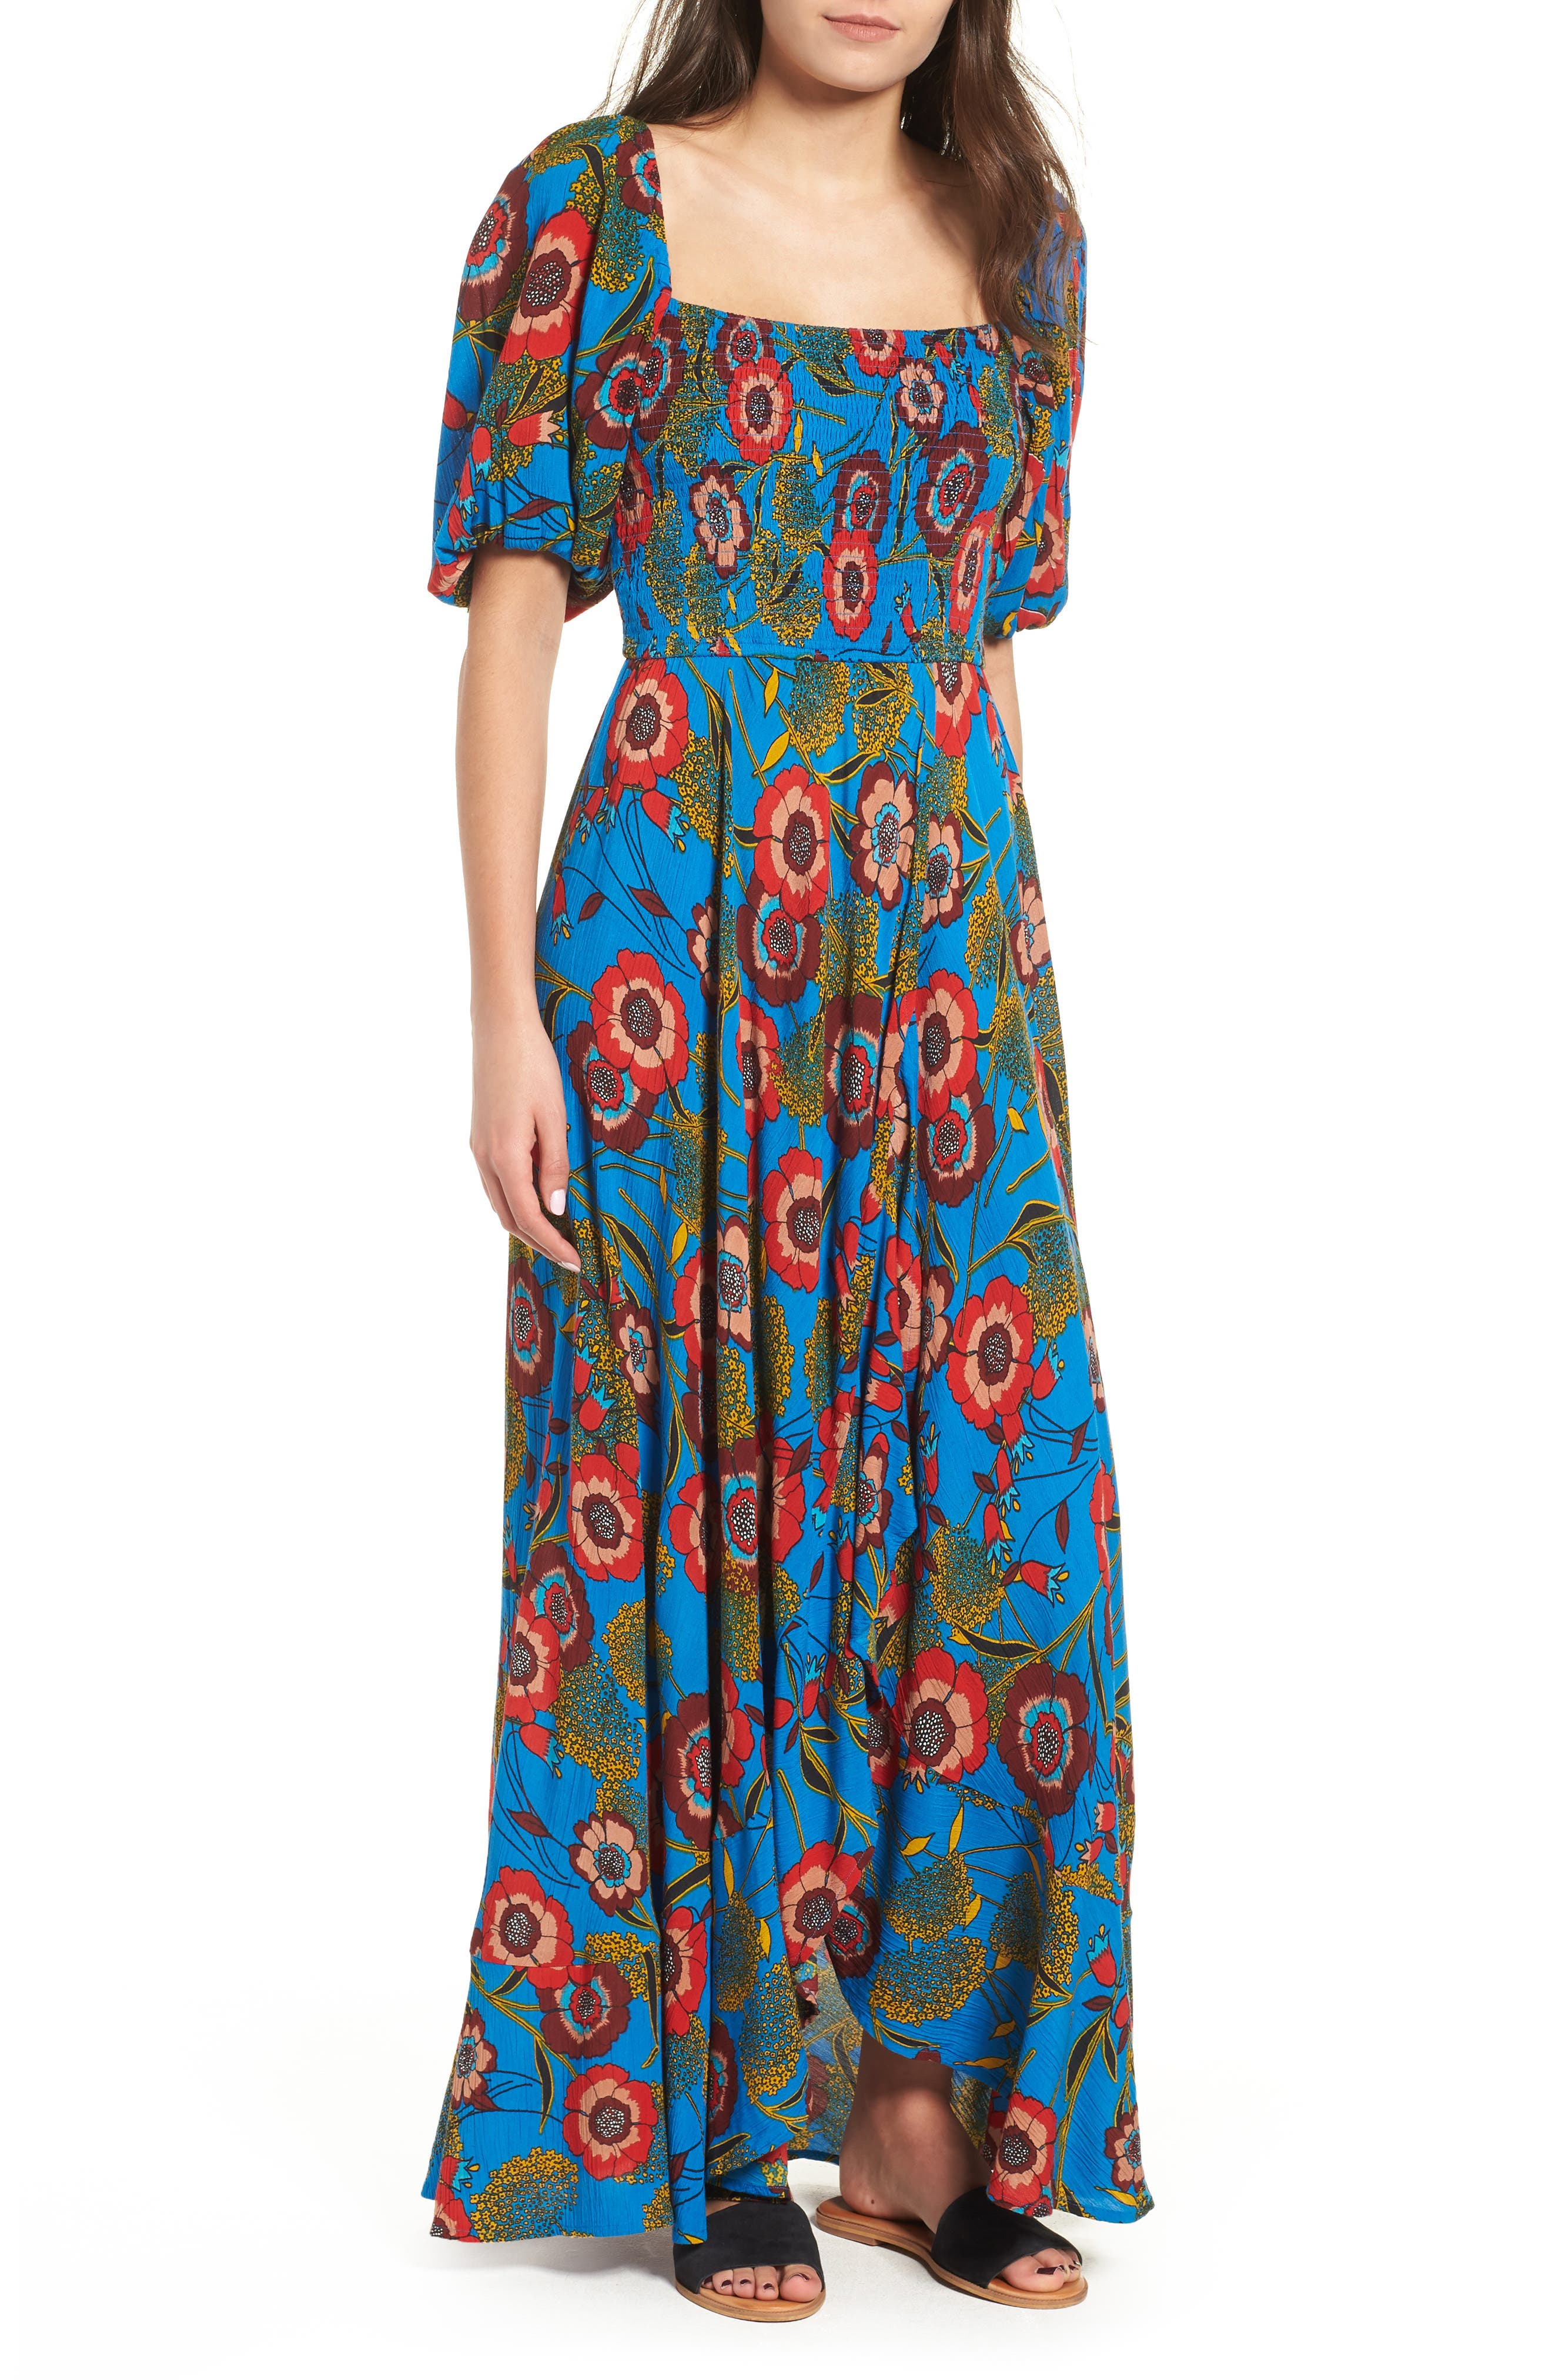 Heirloom Blossom Maxi Dress,                             Main thumbnail 1, color,                             ROYAL/ BLUE/ RED